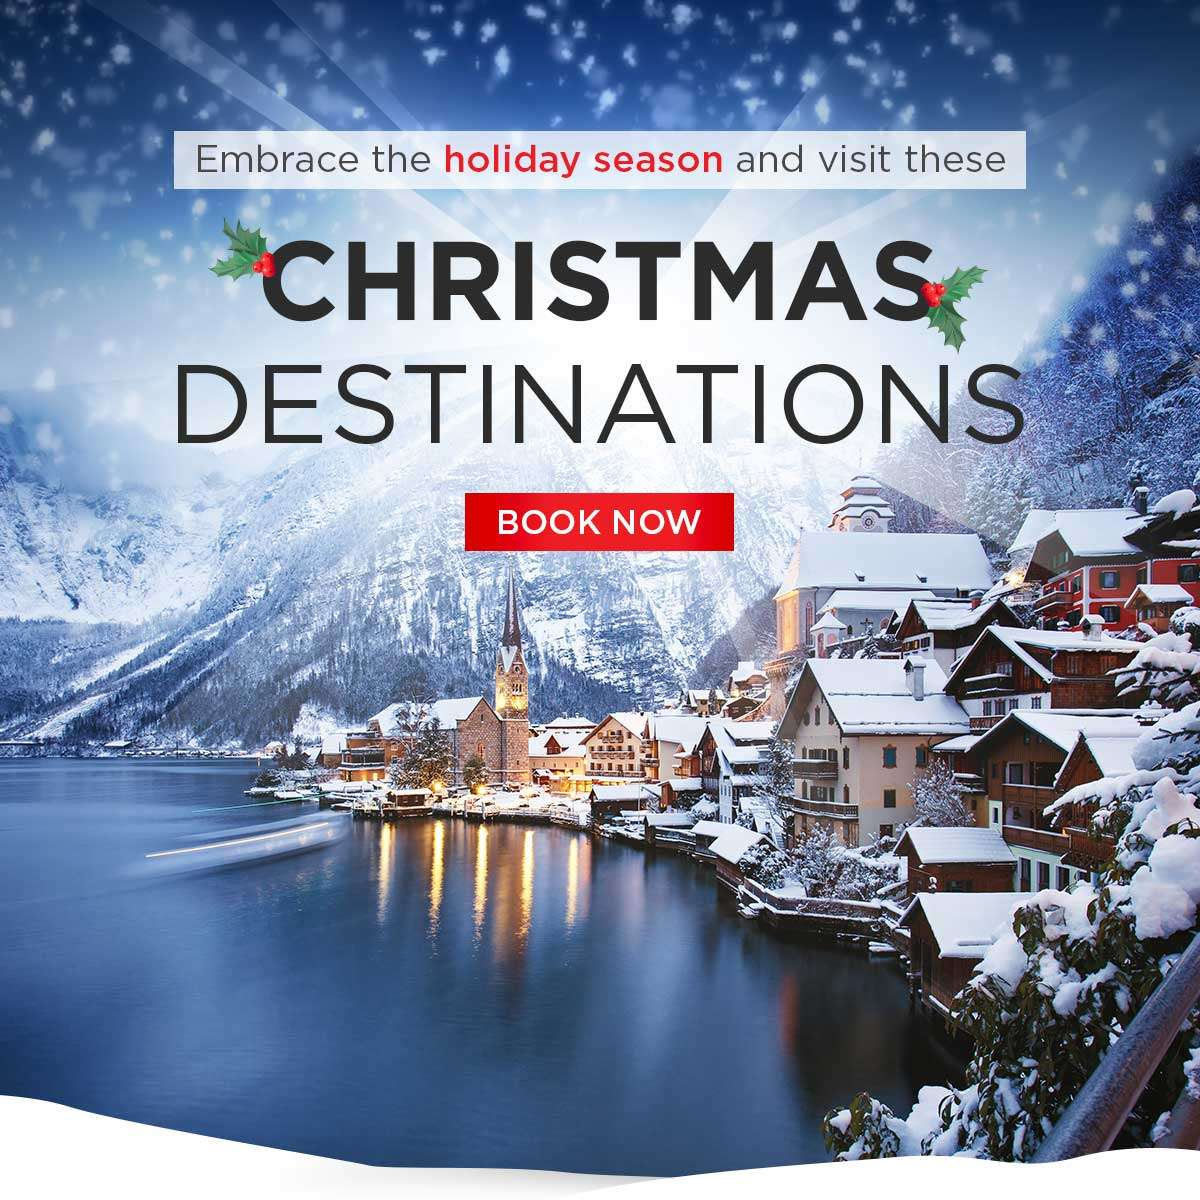 Embrace the holiday season and visit these Christmas destinations